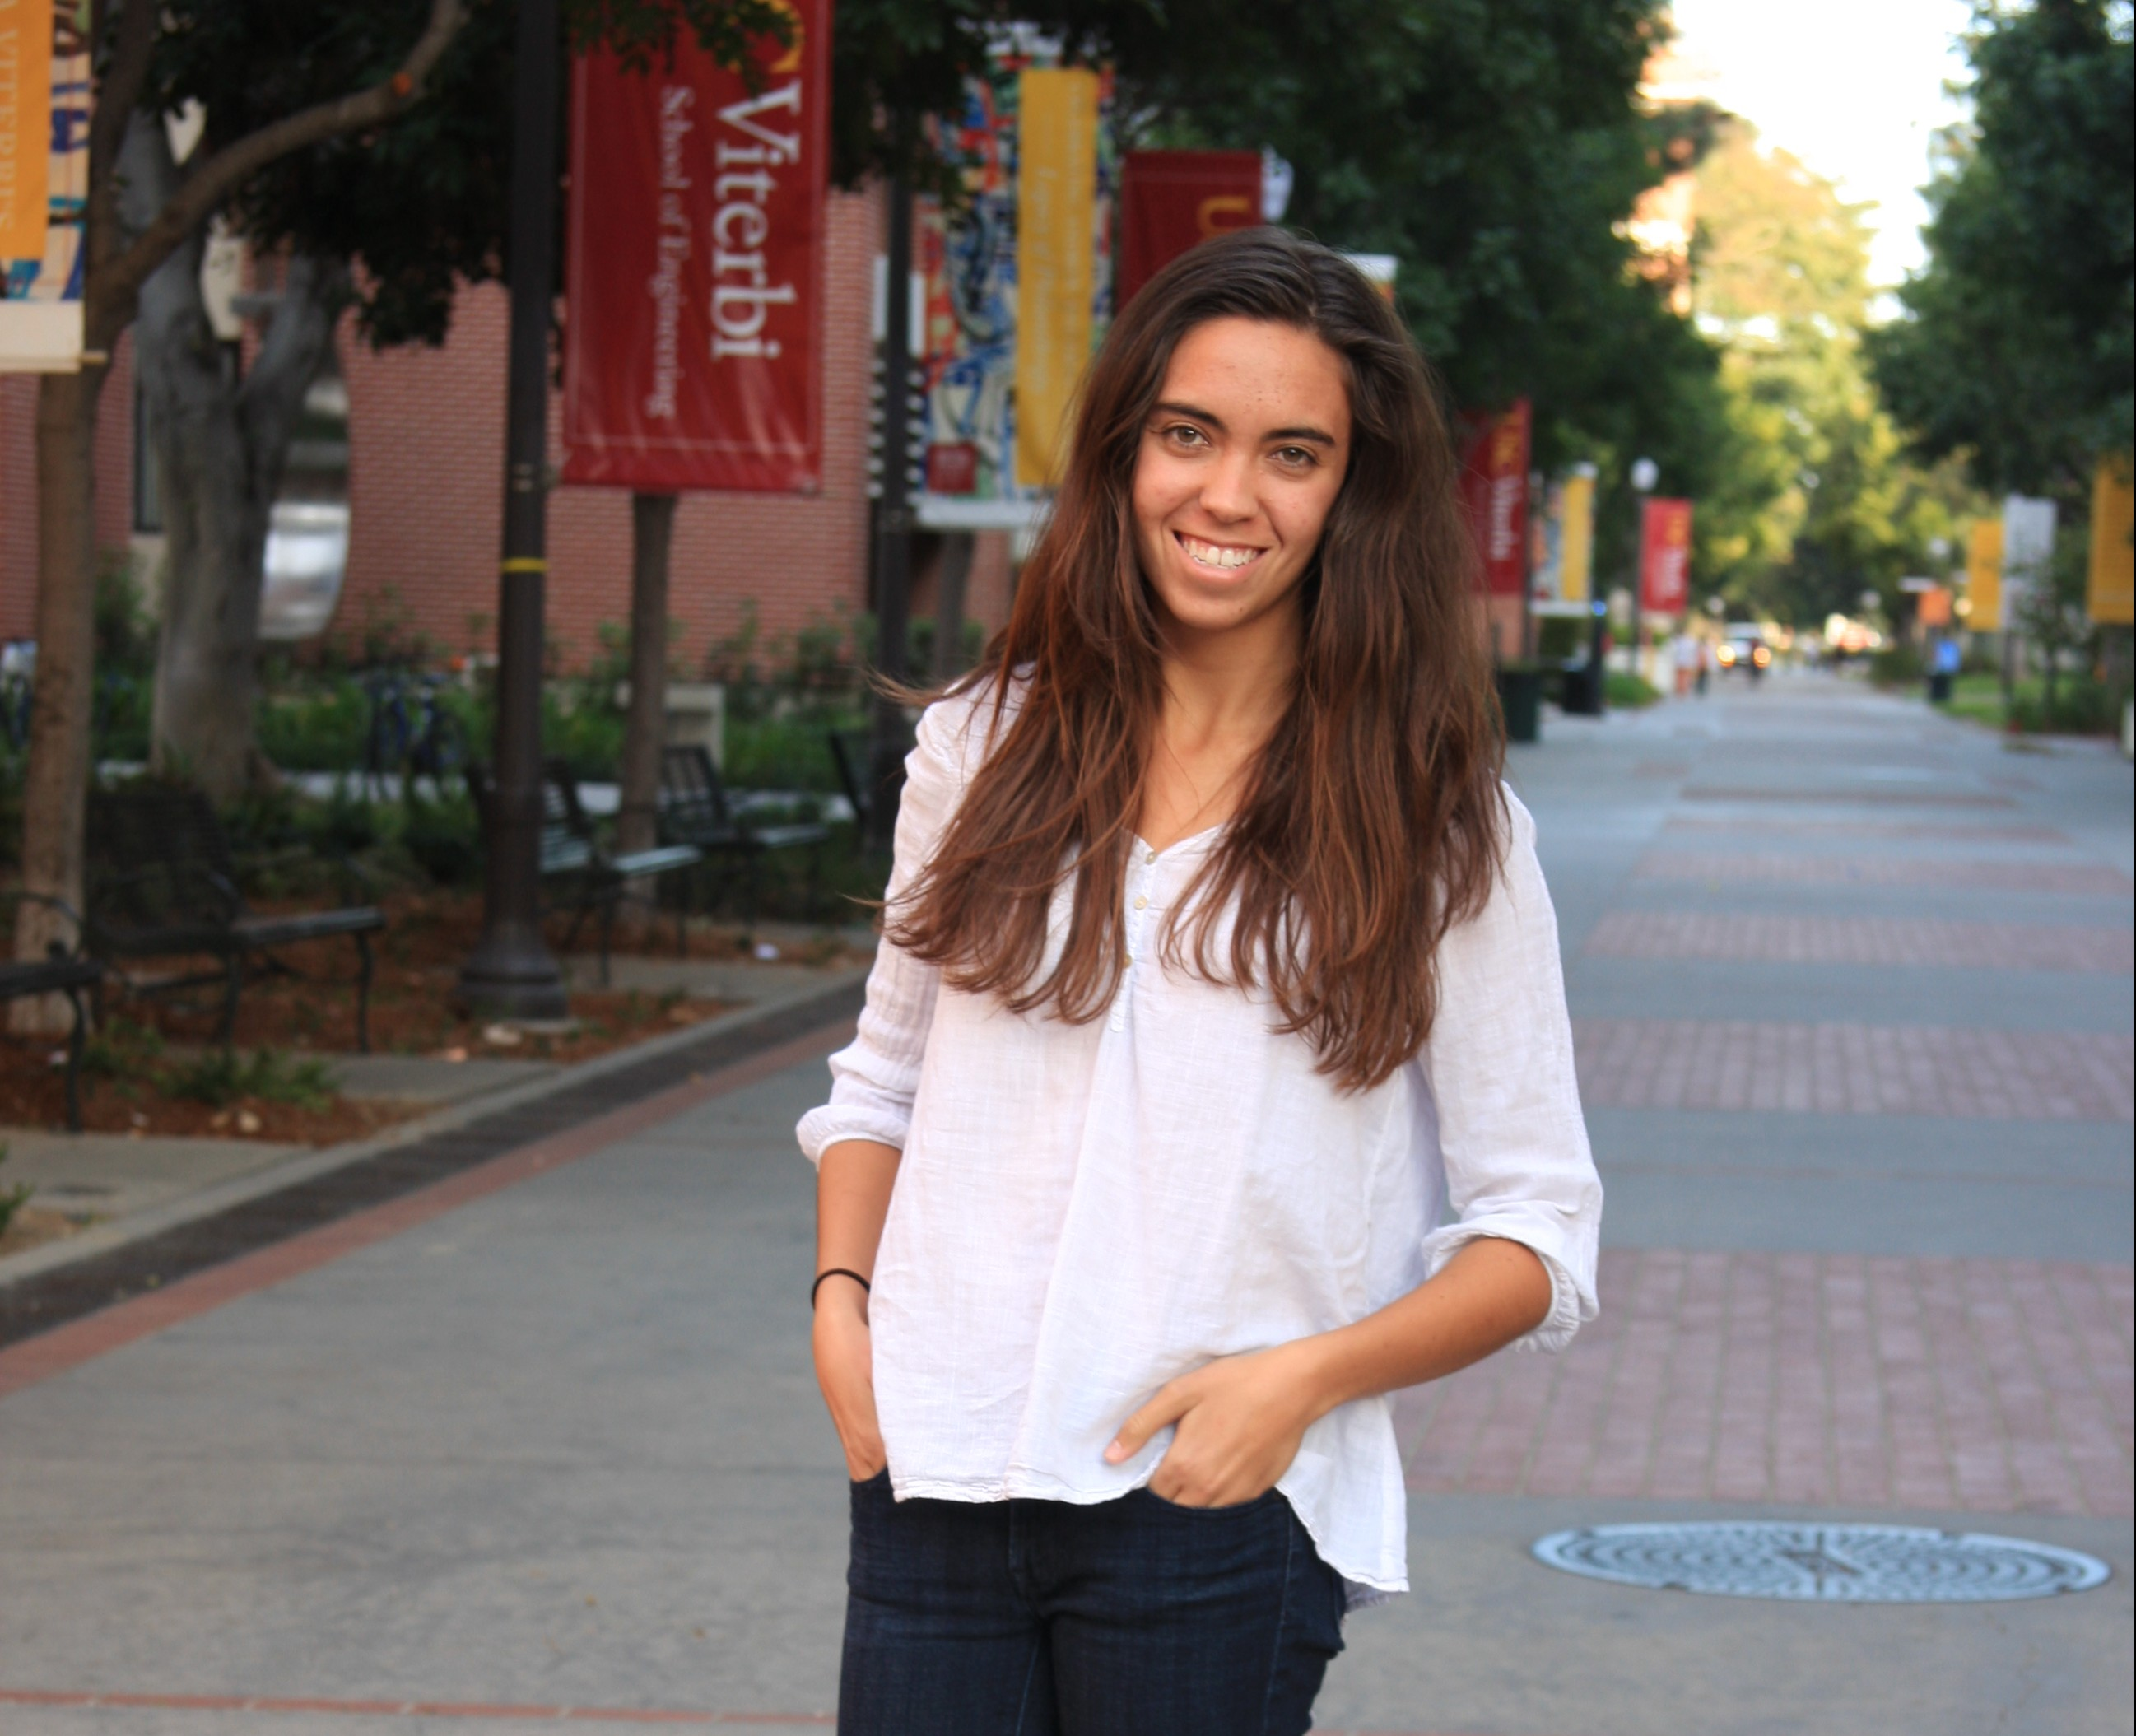 Madi Swayne, a 2011 San Clemente High School Grad, has earned bachelor's and master's degrees at USC and will continue on for a doctorate. Photo: Courtesy